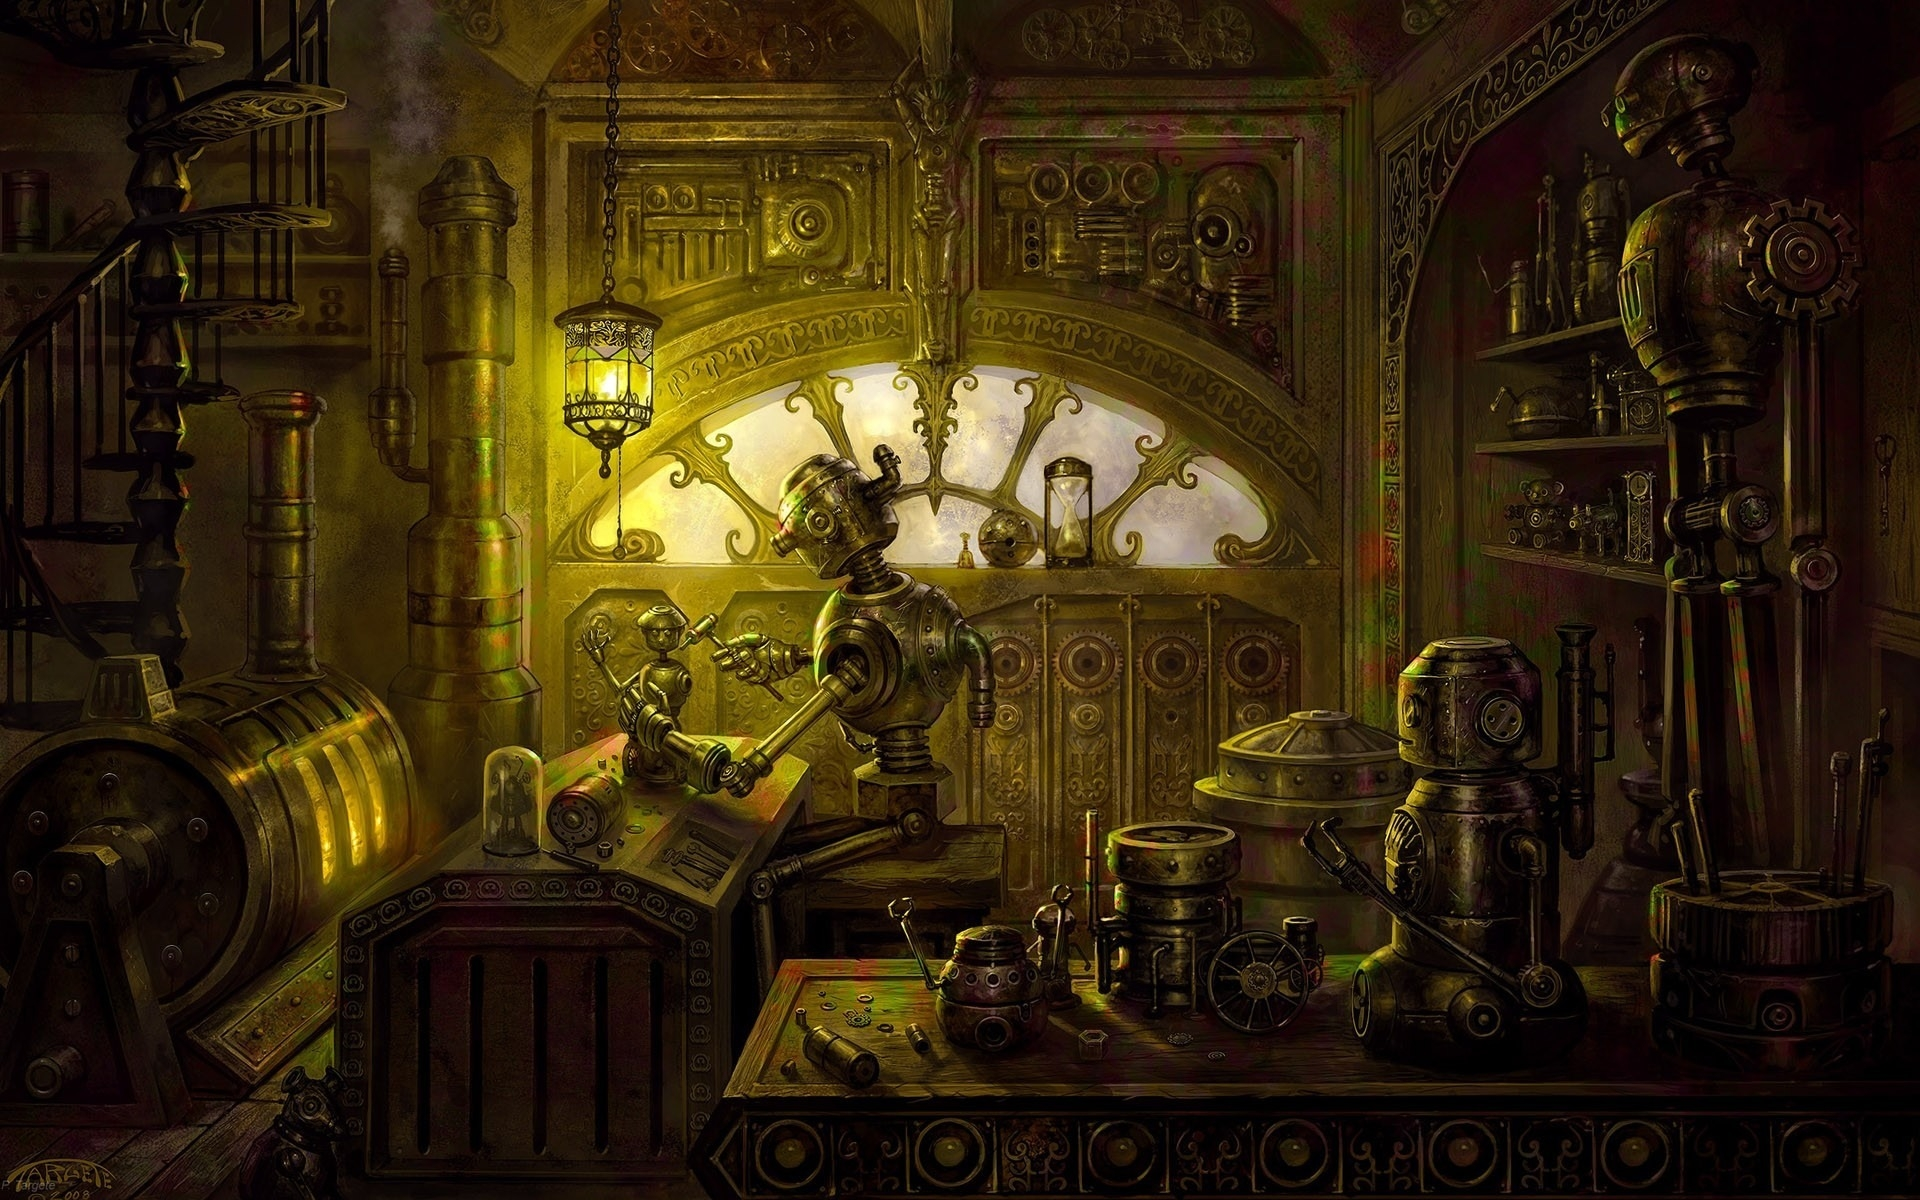 Steampunk mechanical room robots wallpaper 1920x1200 62283 1920x1200